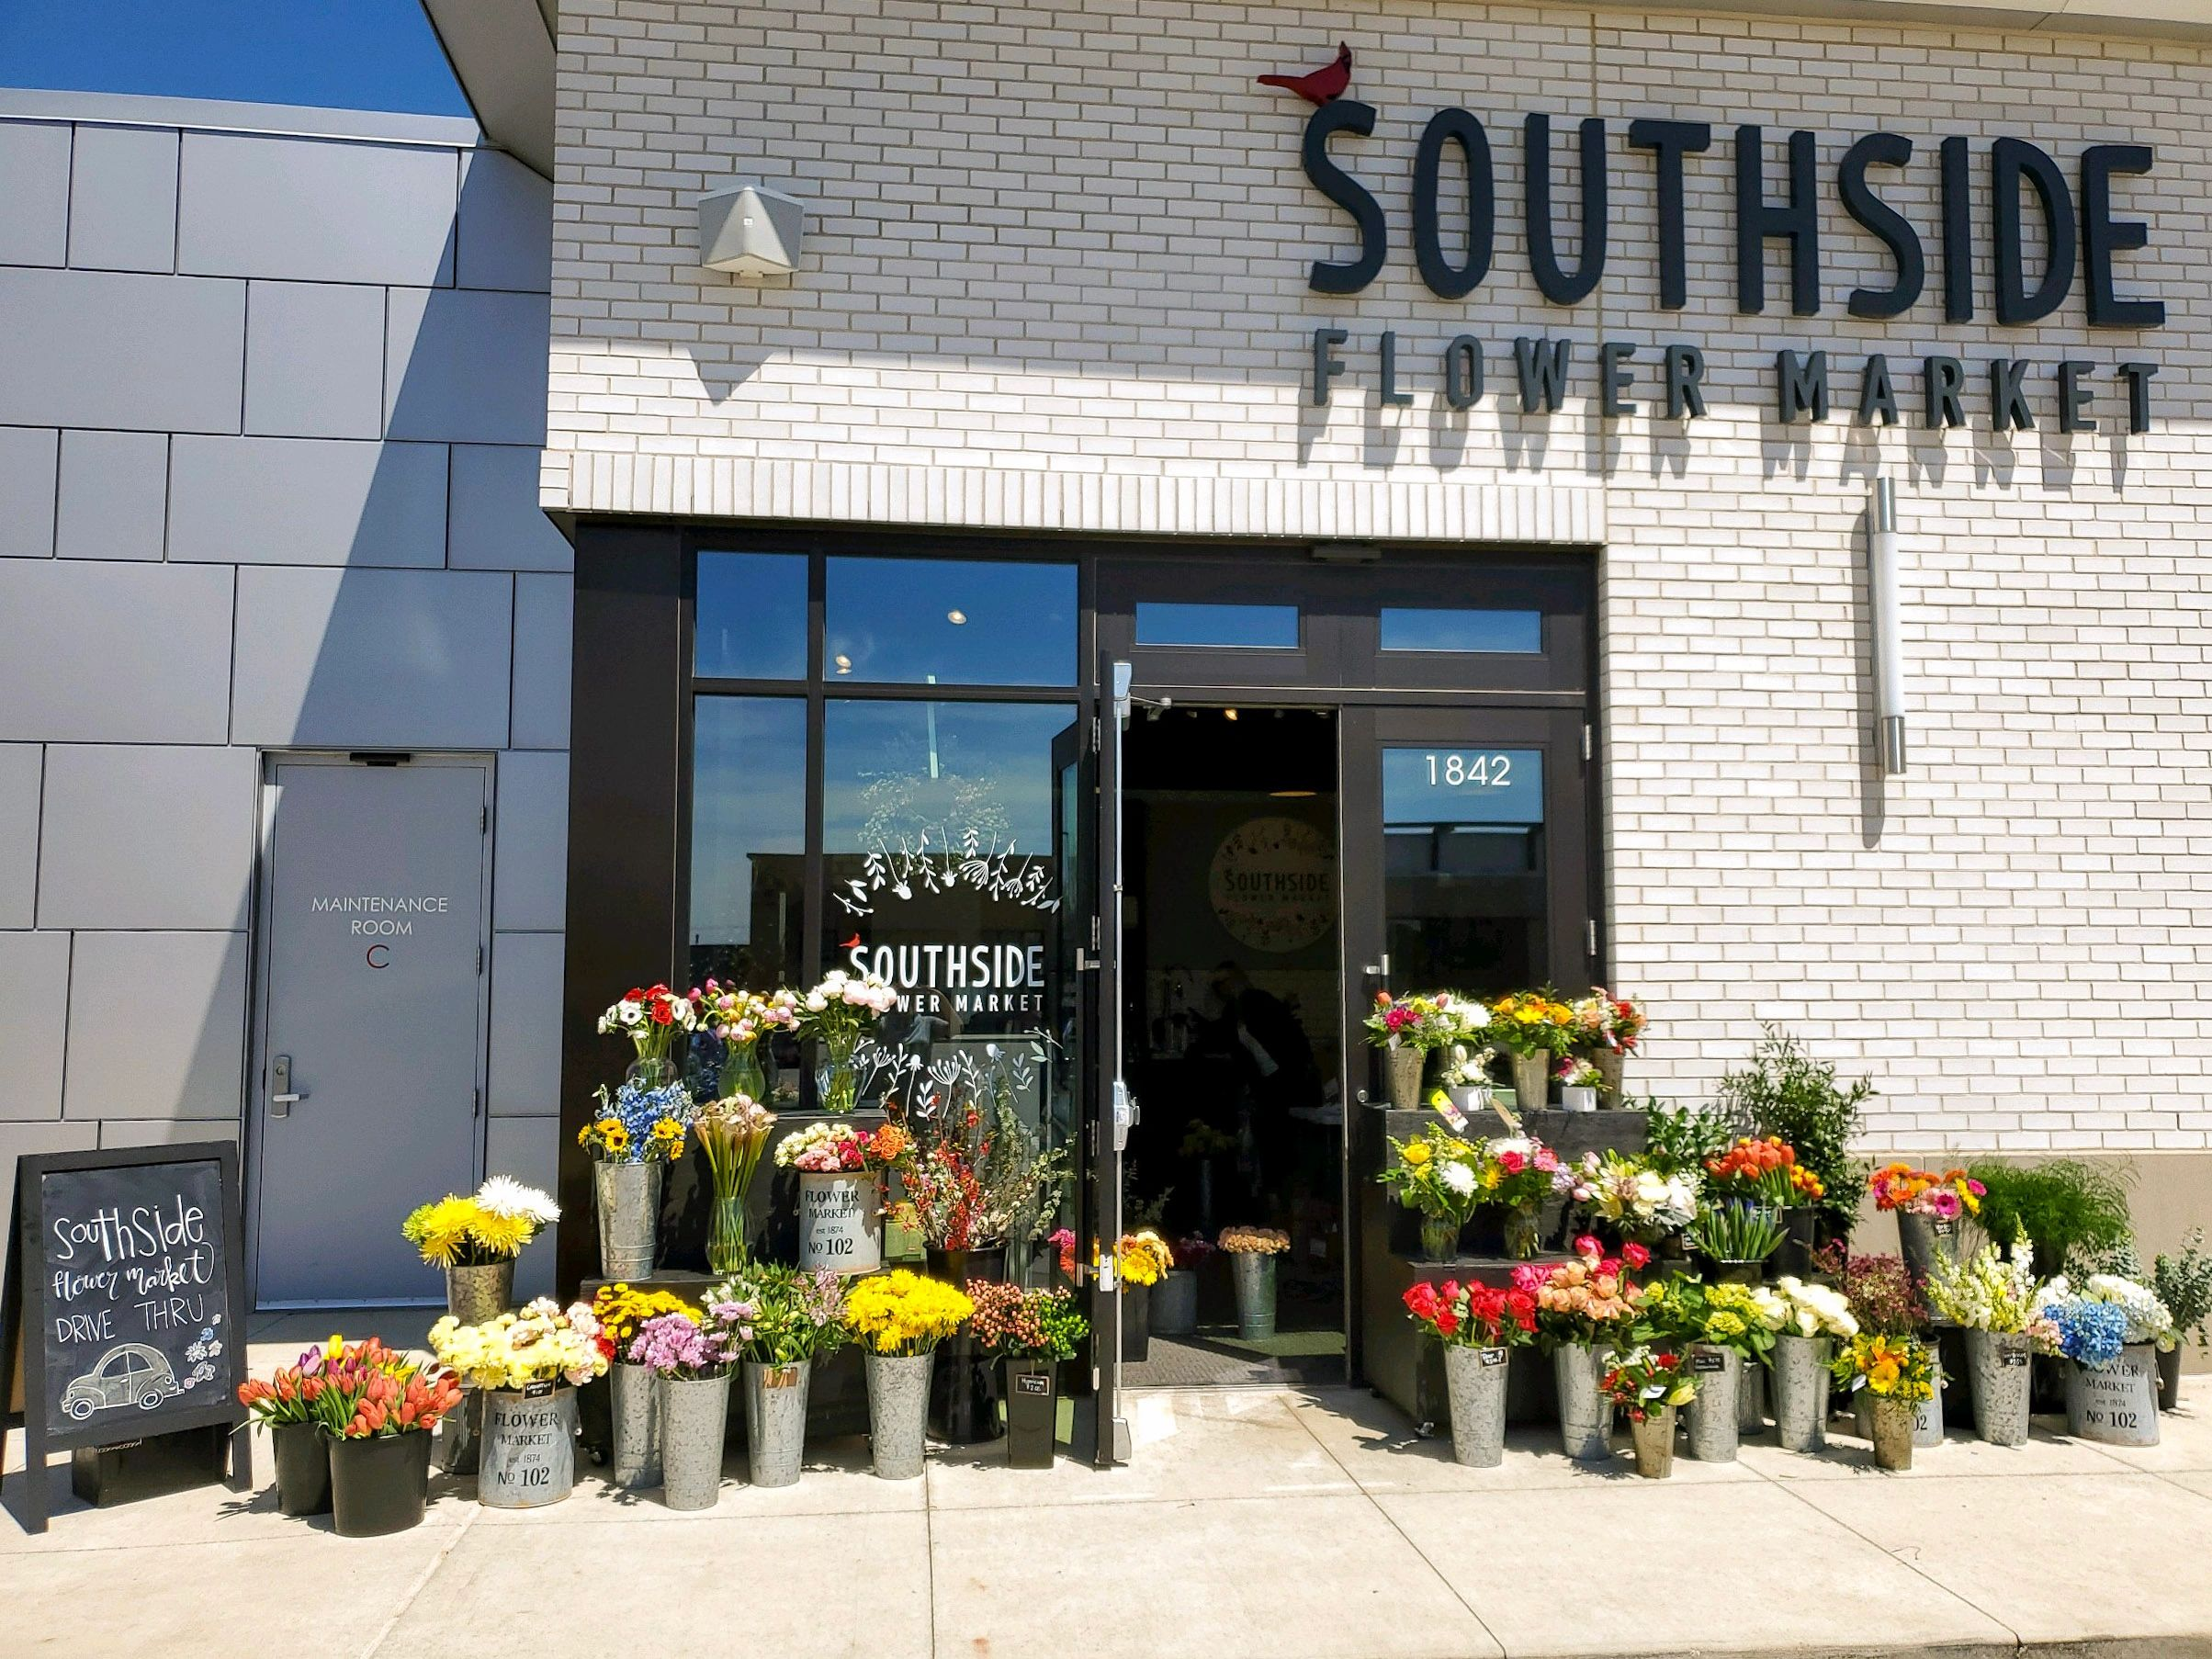 Drive through flower market offers curbside pickup of your arrangement or hand tied bouquet.